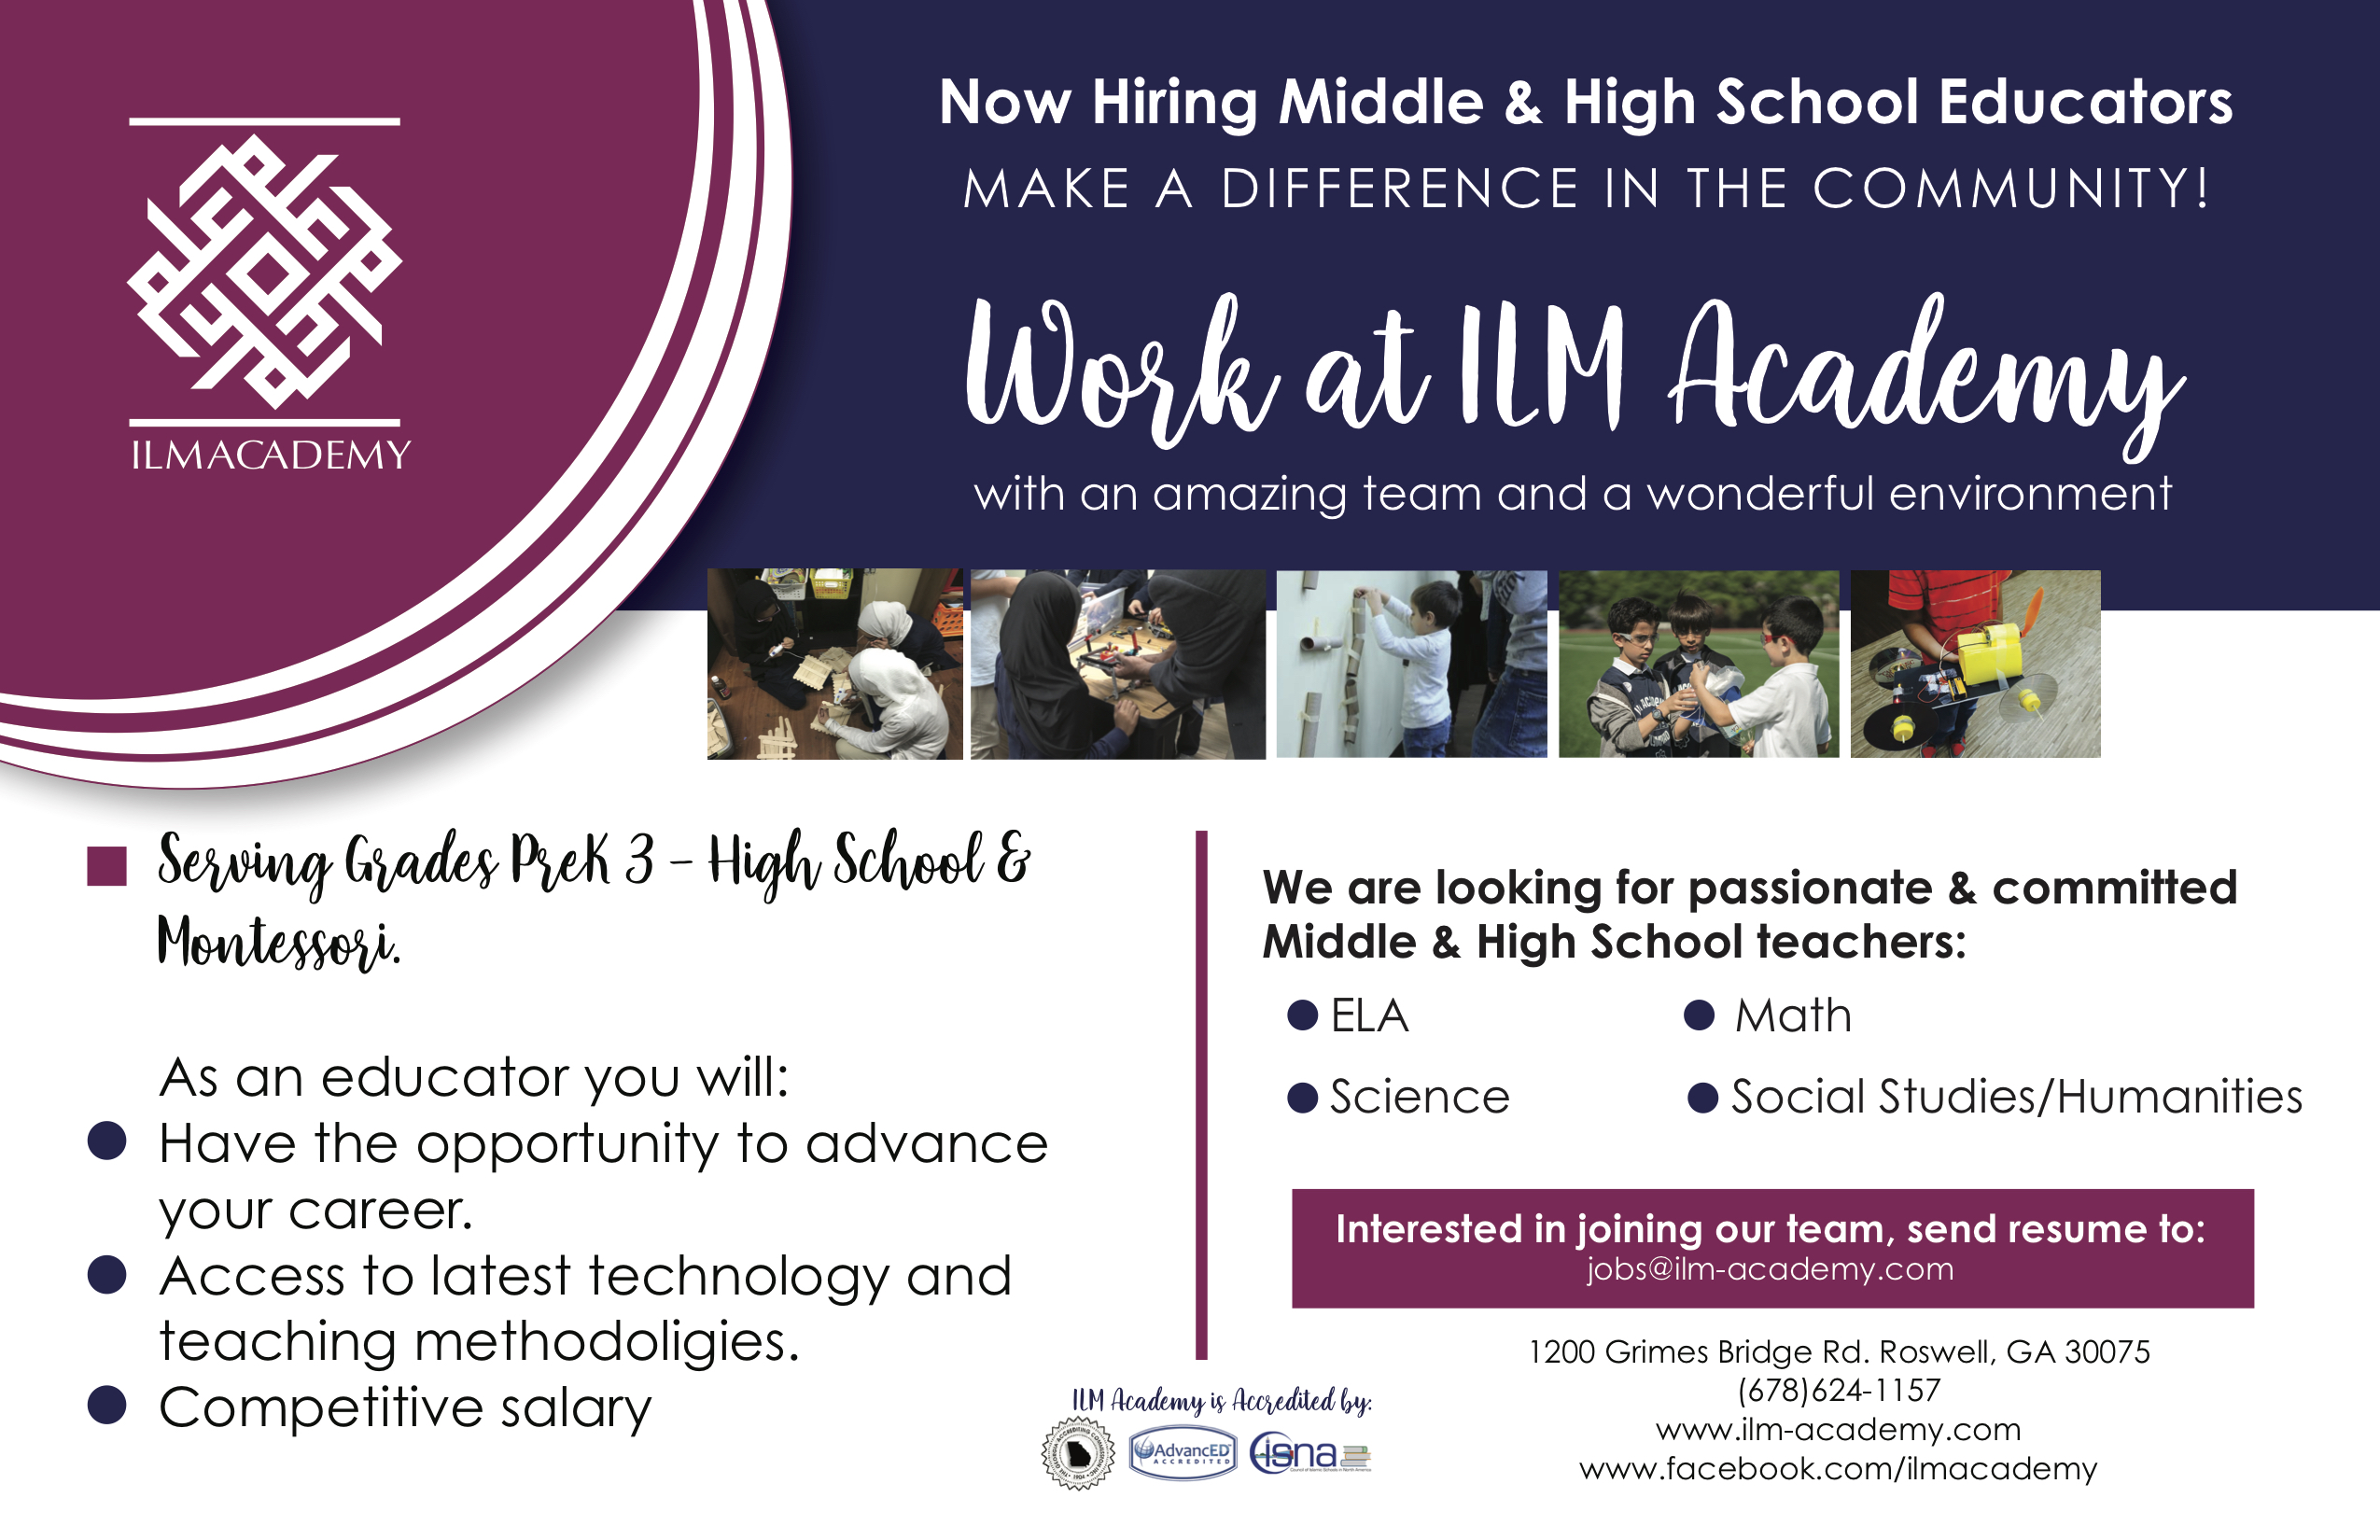 Now Hiring Ad for ILM Academy